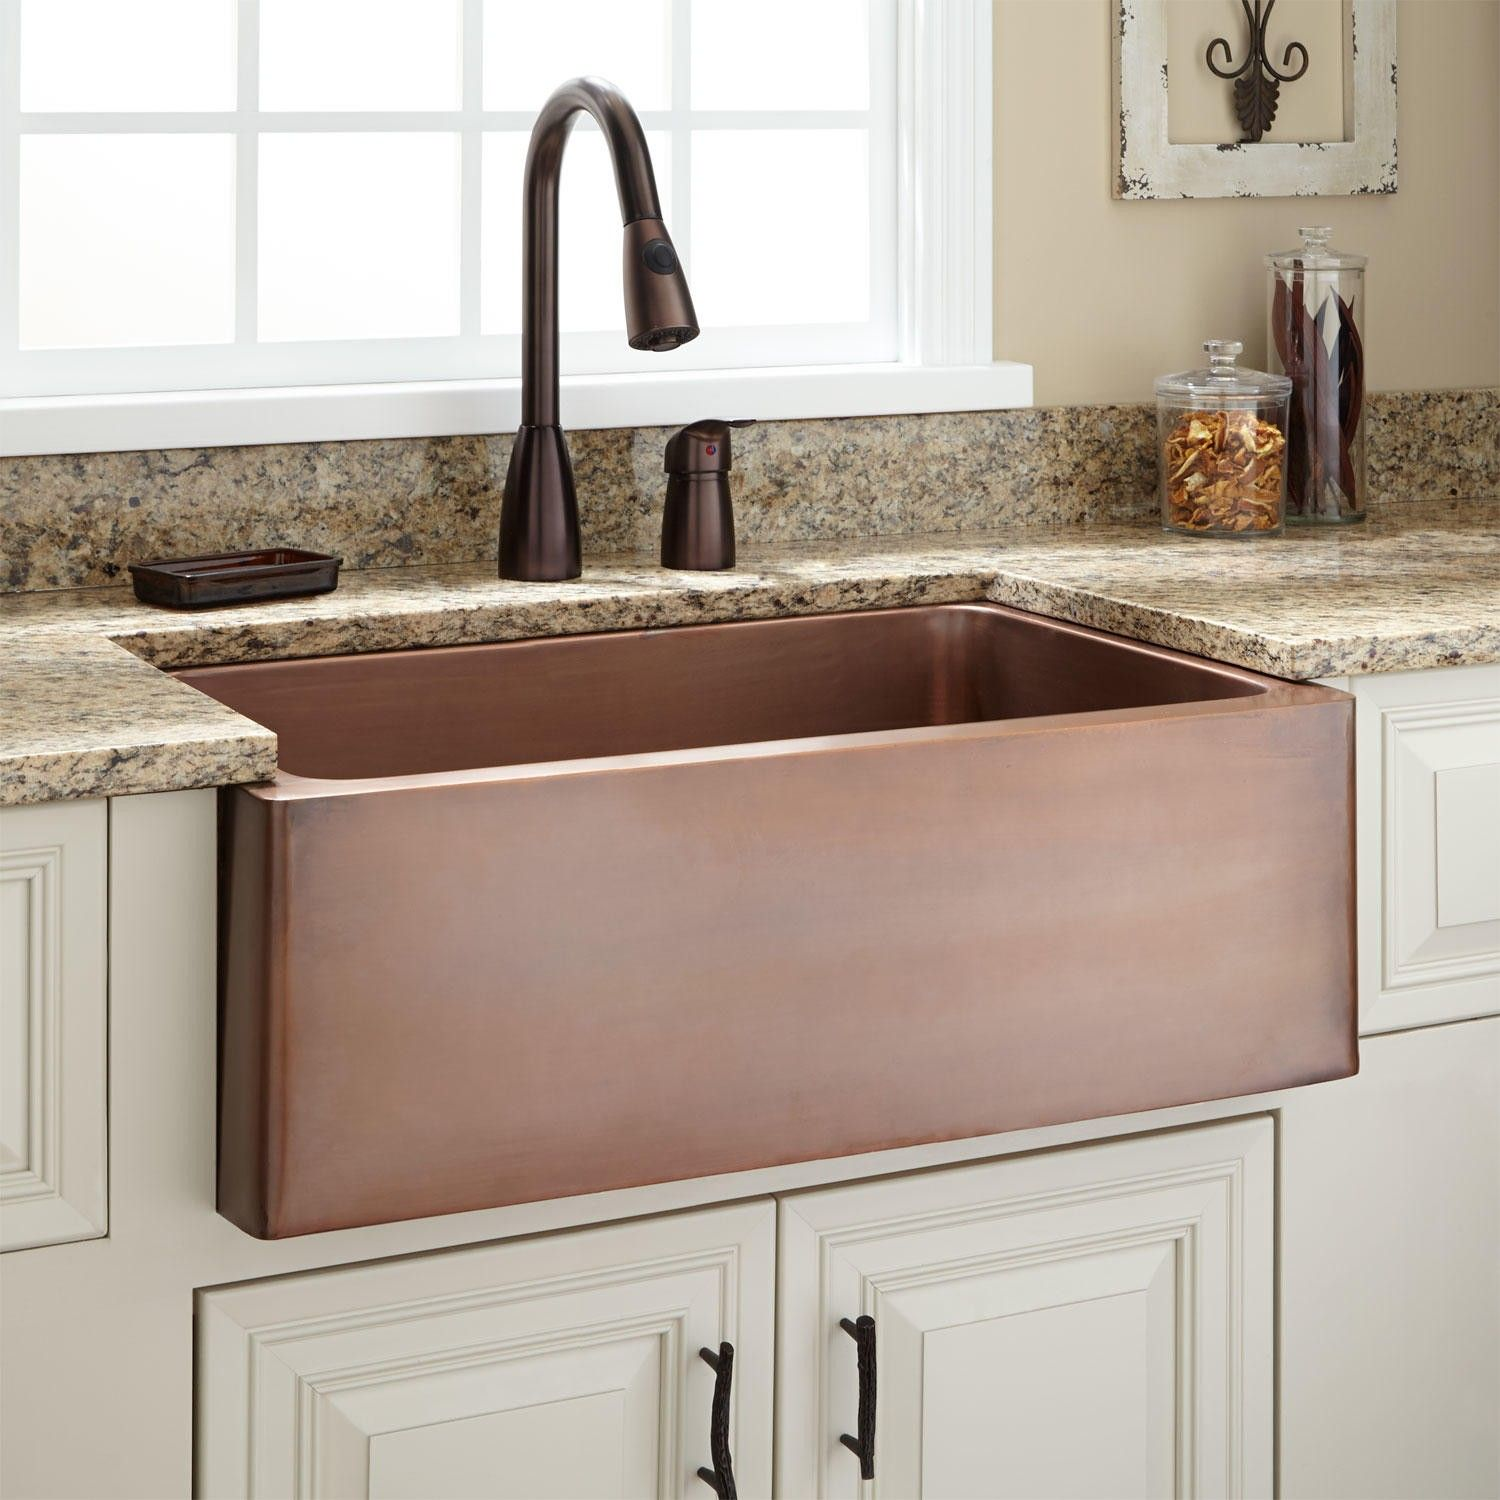 30 Kembla Copper Farmhouse Sink Copper Kitchen Sinks Kitchen Sinks Kitchen Copper Farmhouse Sinks Farmhouse Sink Kitchen Copper Kitchen Sink Farmhouse